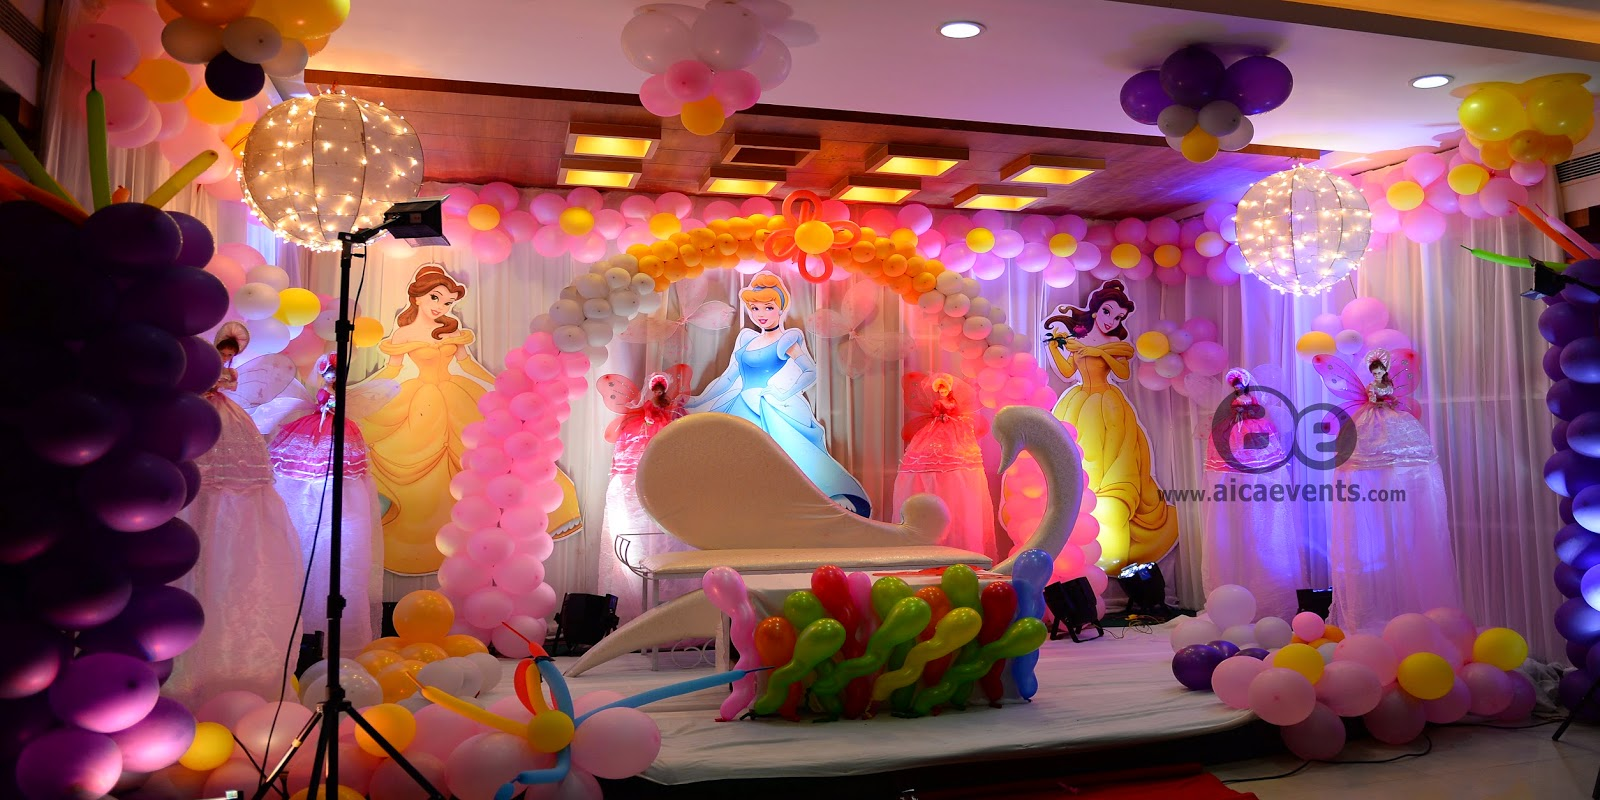 Aicaevents India: Barbie theme decorations by AICA events